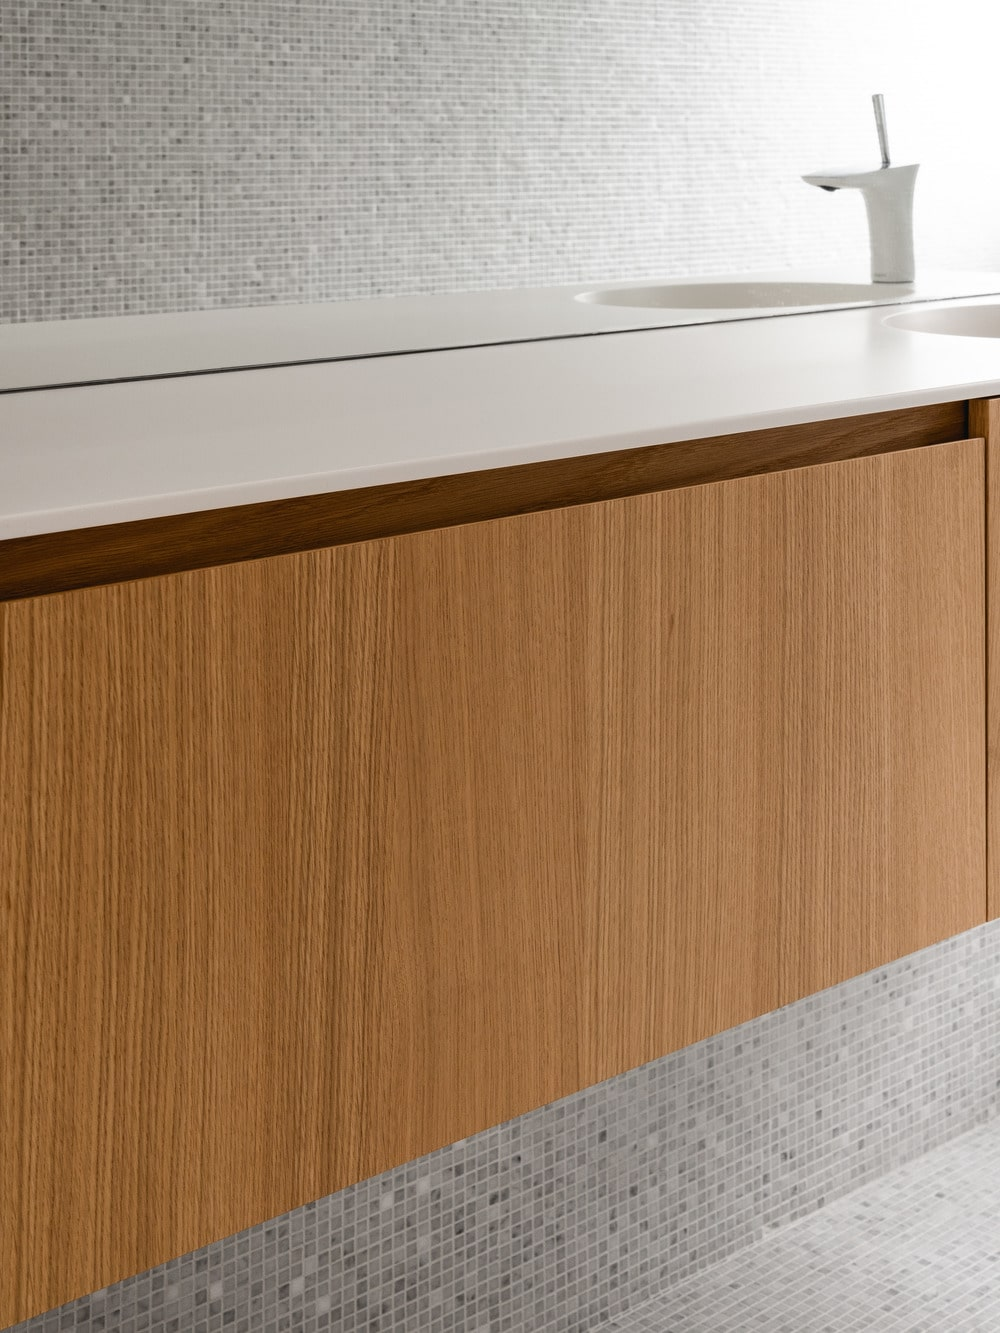 This is a close view of the floating shelf that has a wooden tone to contrast the light wall.